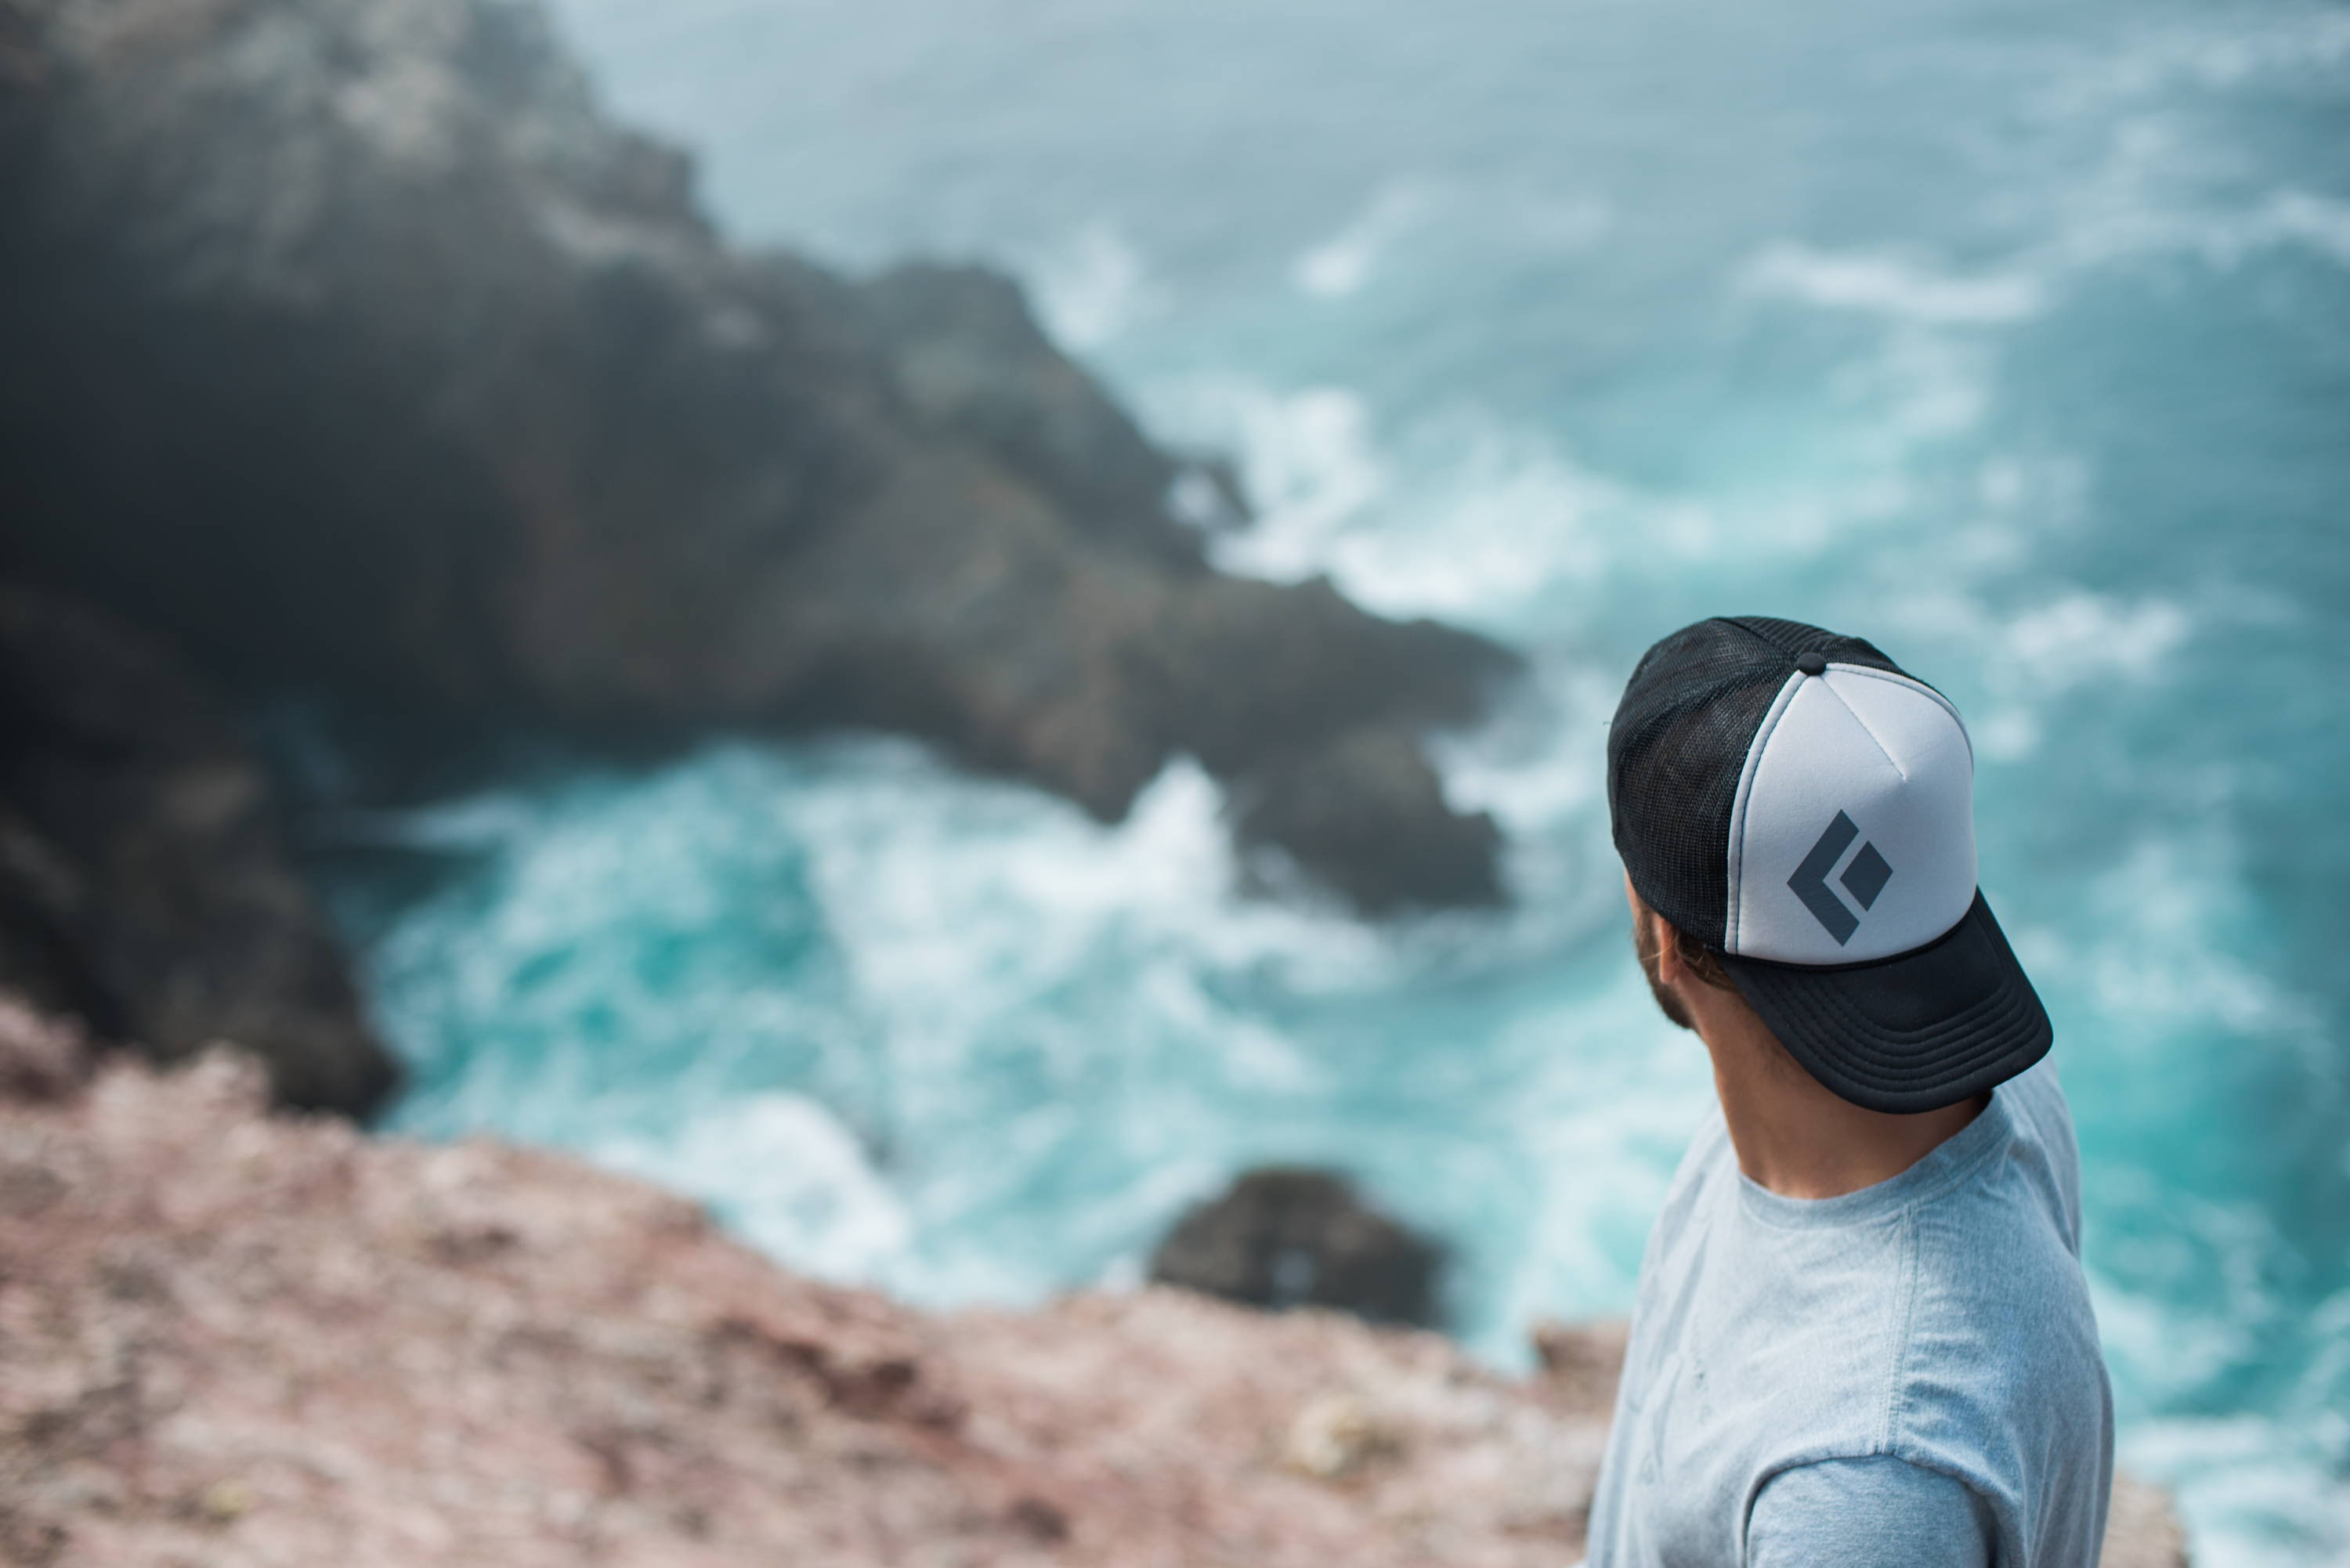 overlooking clear blue ocean backwards hat rocky beach scenery